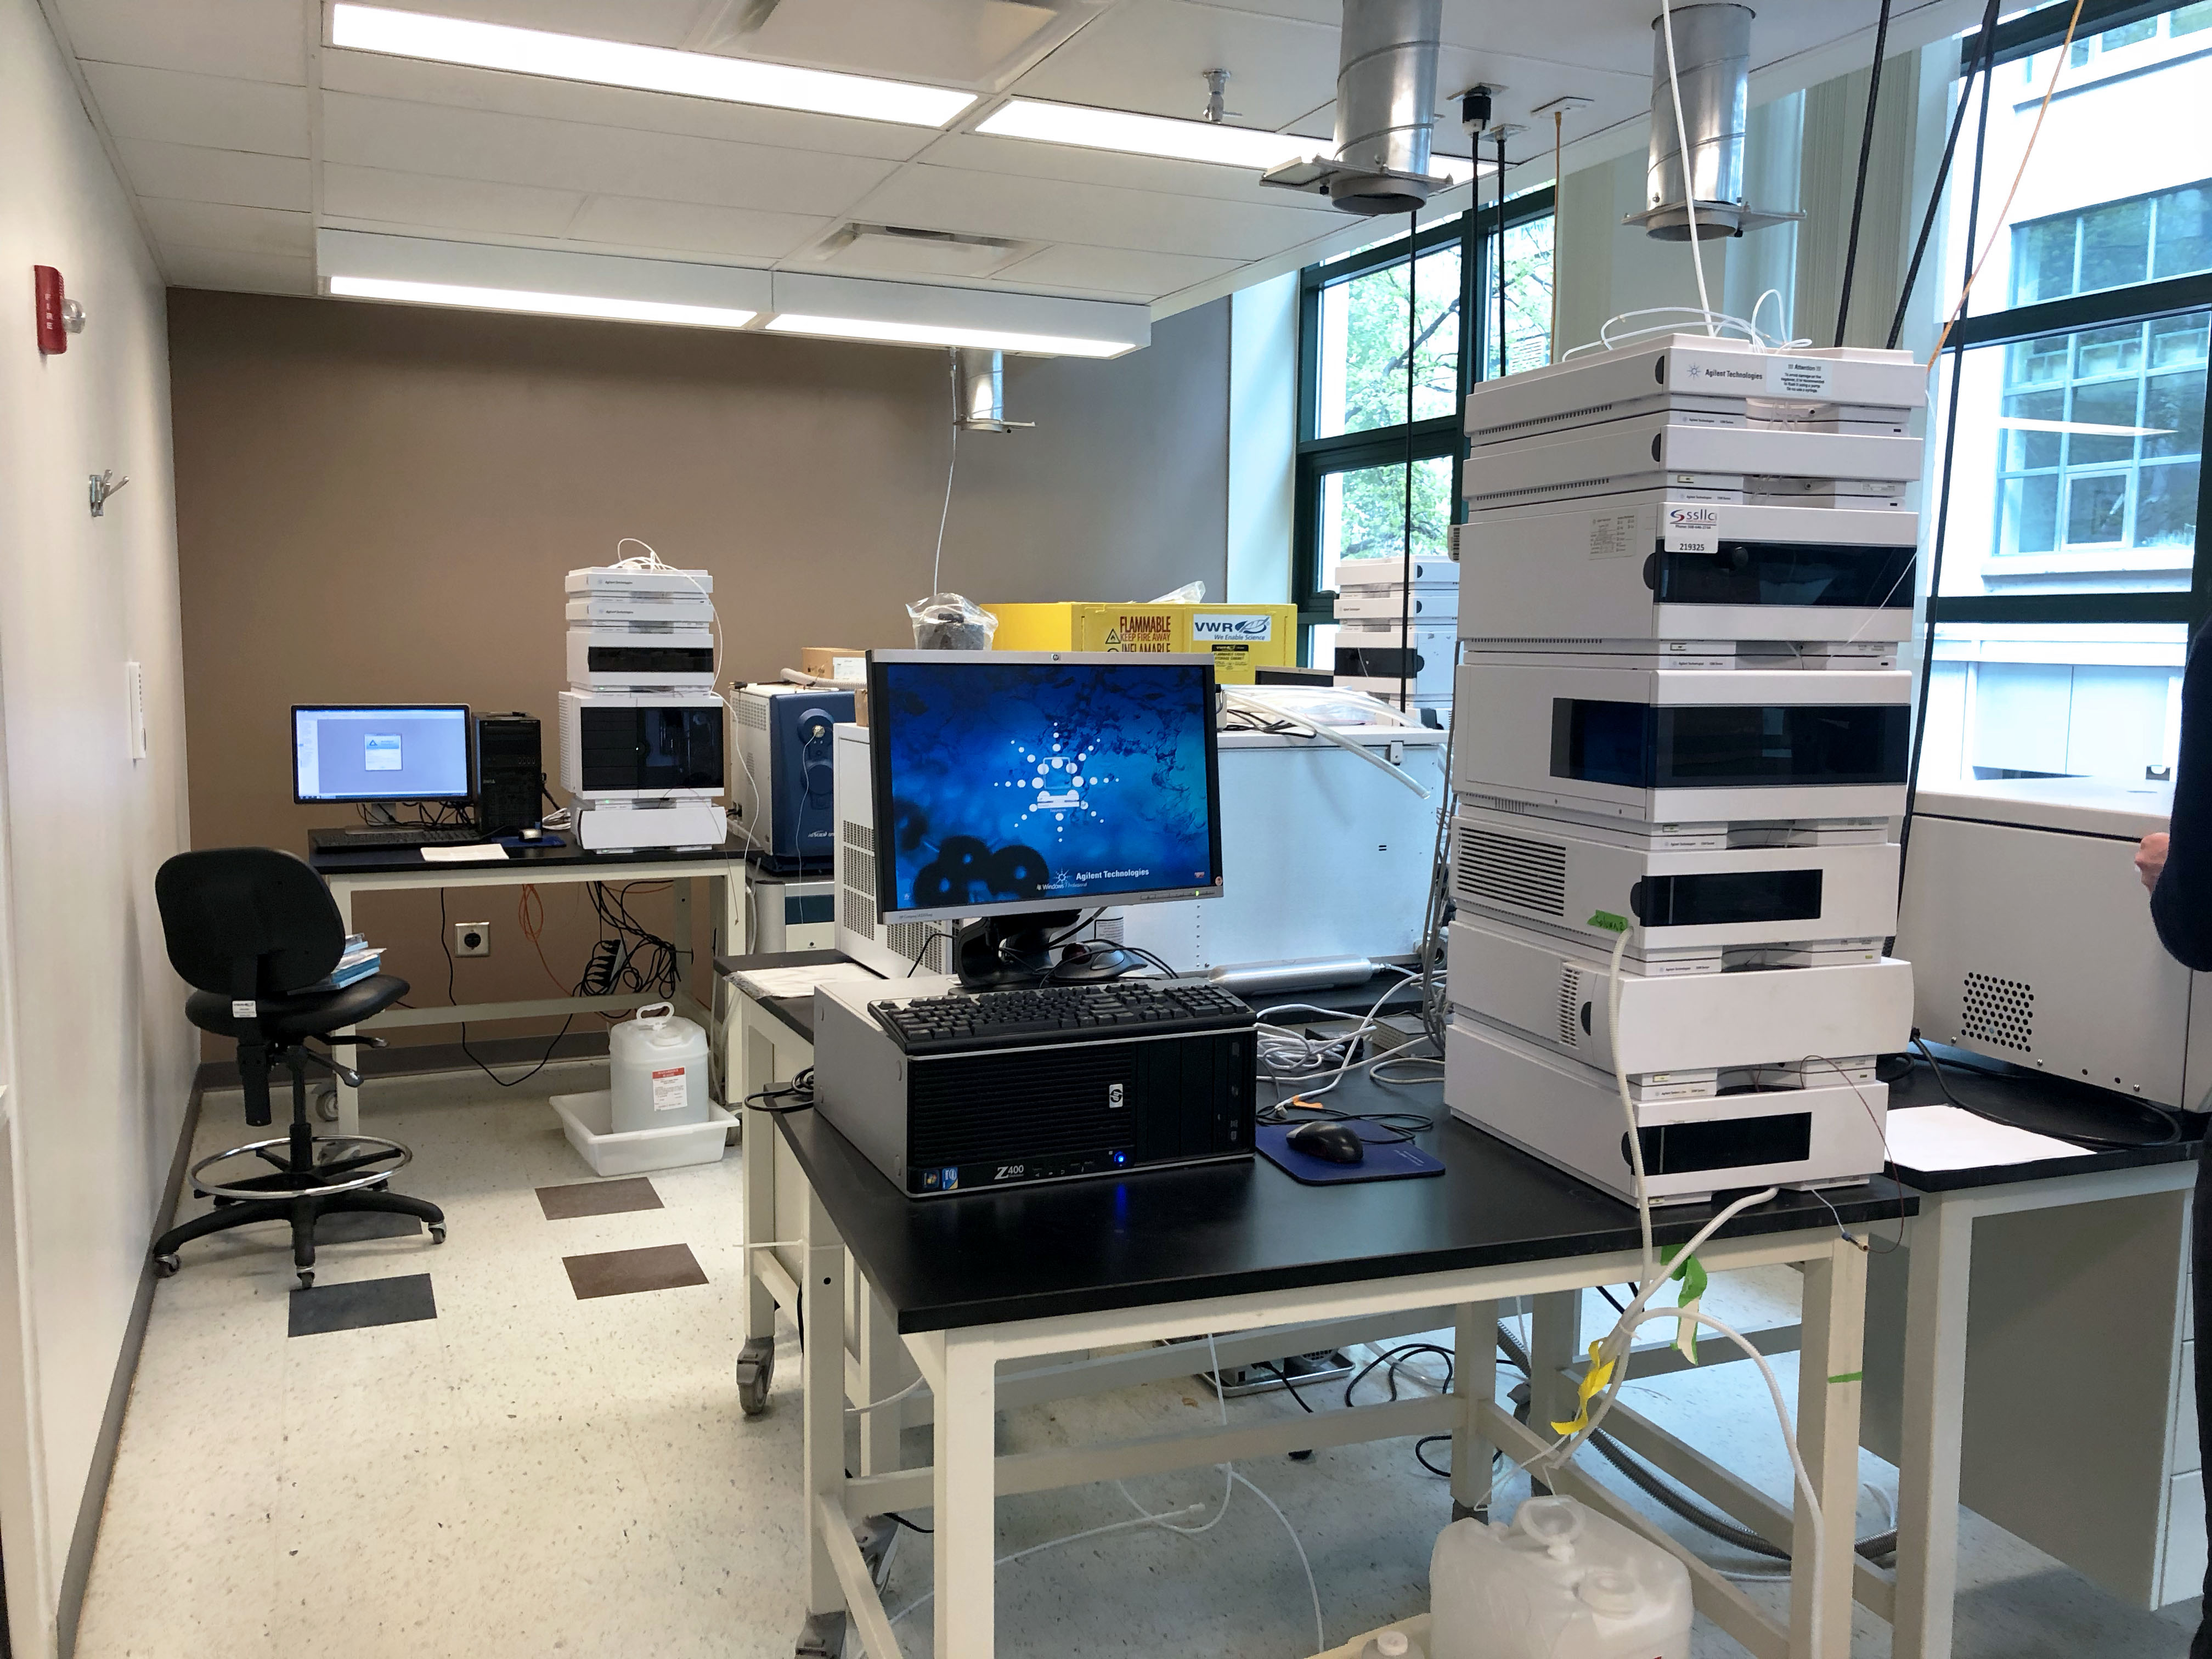 Late Model Lab and Analytical Equipment from Leading Cambridge Biotech!